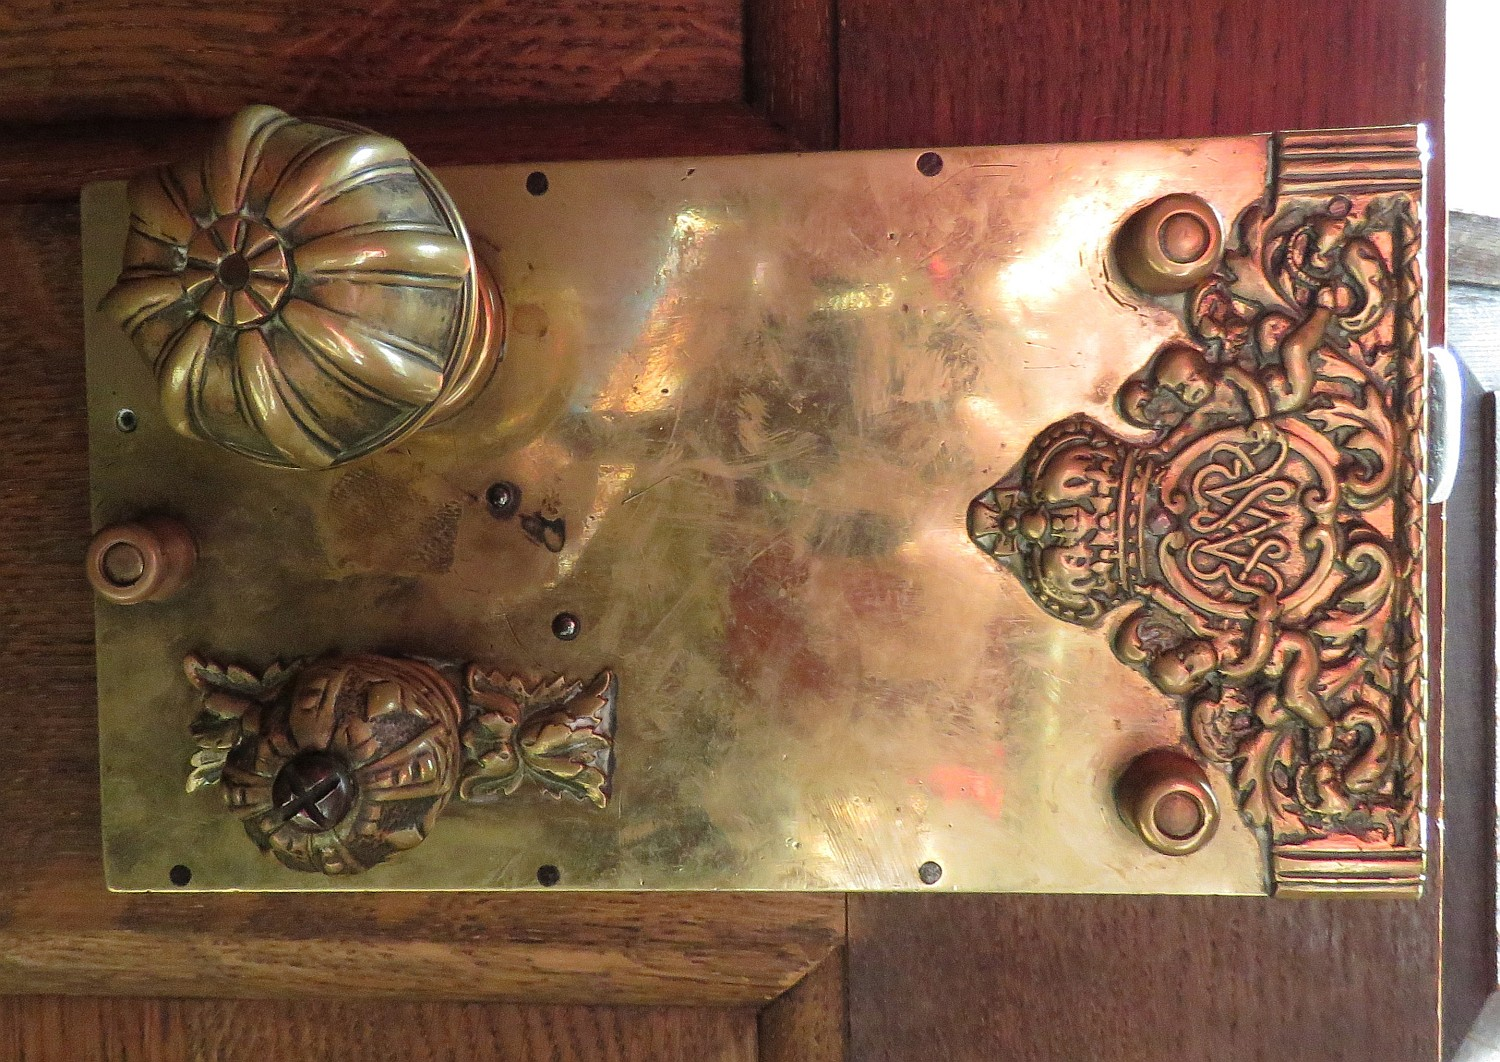 Door handle with monogram of William and Mary.